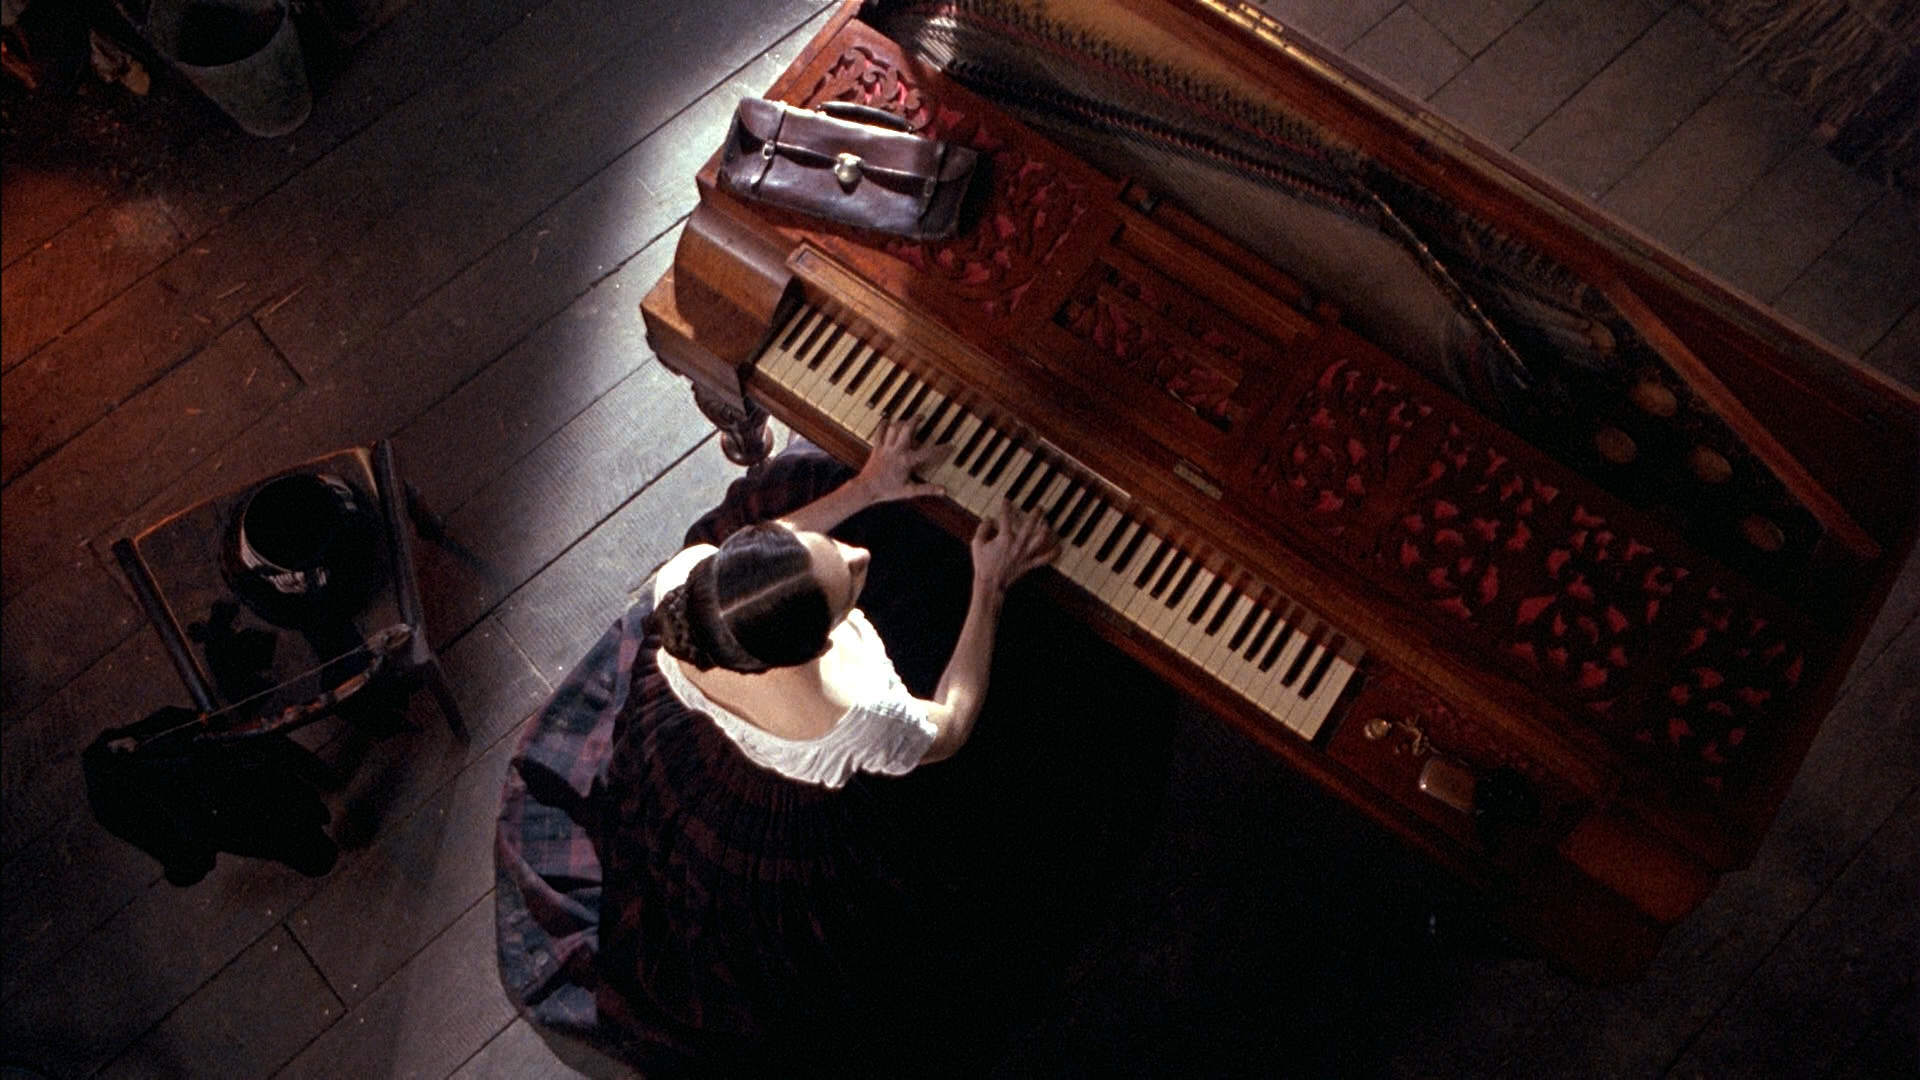 campions the piano and oppression The (un)speakable femininity in mainstream movies: jane campion's the piano bihlmeyer, jaime cinema journal, 44, number 2, winter 2005, pp 68-88 (article) published by university of texas press doi: 101353/cj20050004 for additional information about this article.